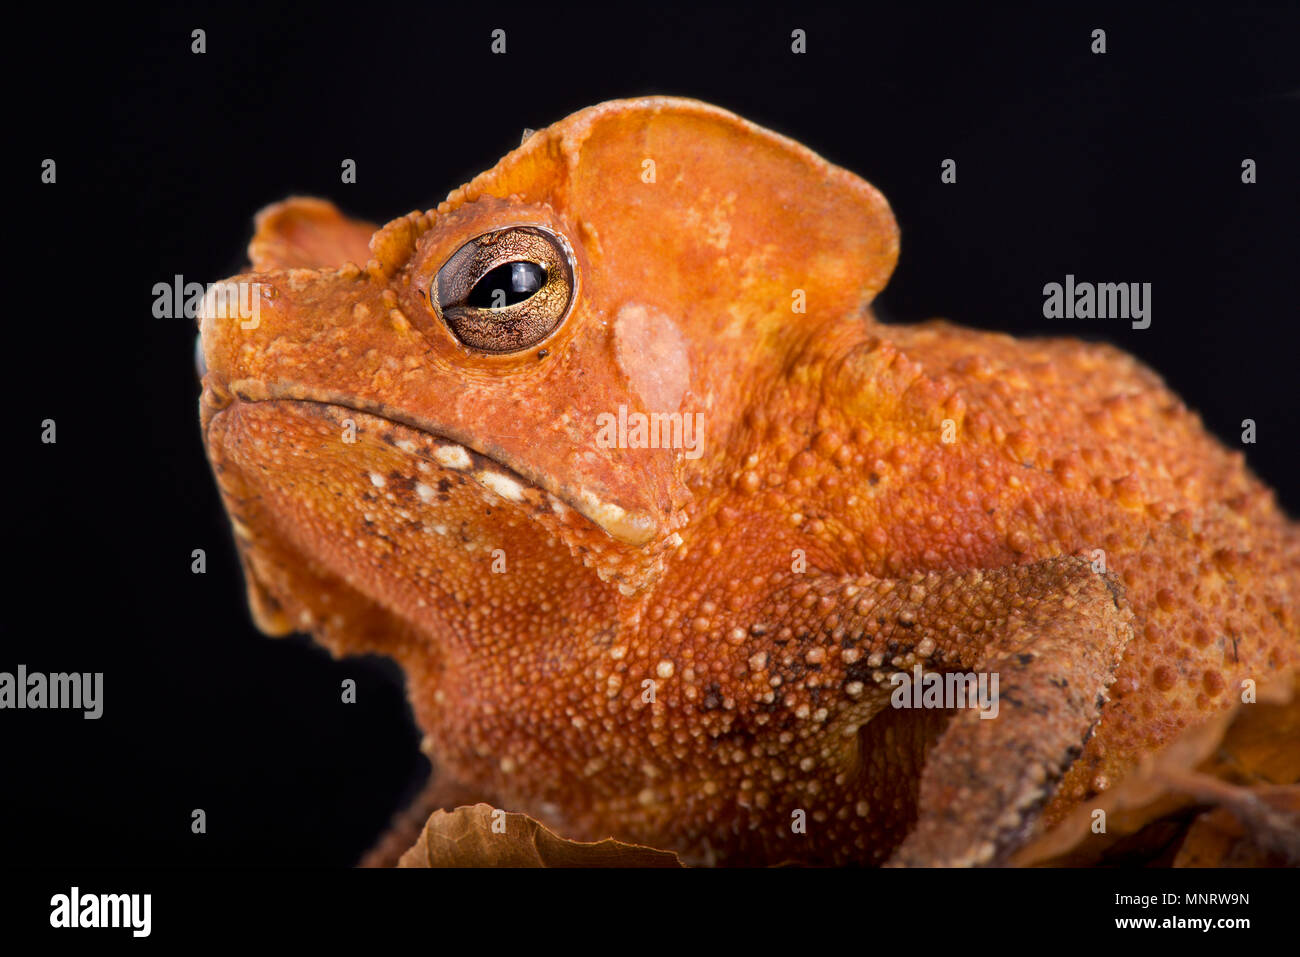 The Guiana Shield Leaf Toad (Rhinella lescurei) is a bizar, alien look, toad species found in Suriname,Guiana and probably Brazil. - Stock Image